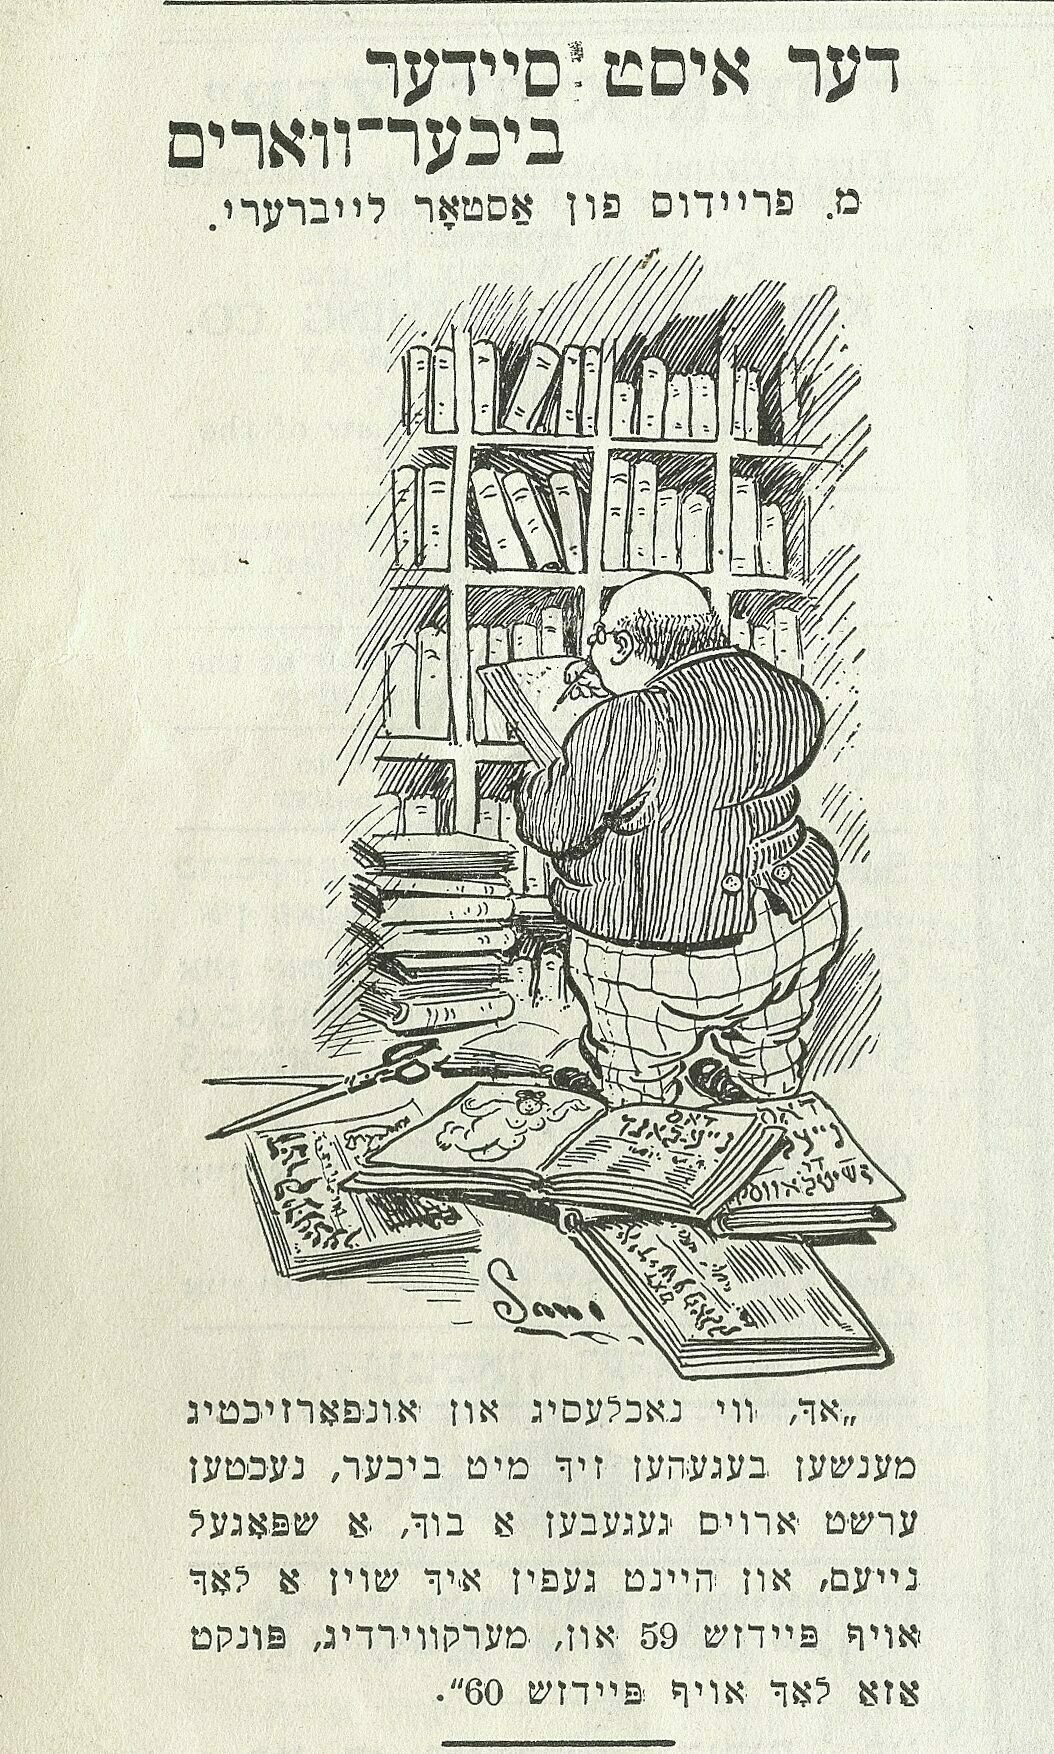 """<p><em>Der kibetser</em> December <span class=""""numbers"""">15</span>,&nbsp;<span class=""""numbers"""">1911</span>.</p> <p>The East Side bookworm: Mr. Freidus of the Astor Library. Founded in <span class=""""numbers"""">1897</span>, the Jewish Division was originally situated in the building of the Astor Library (now the home of The Public Theater), which had recently been incorporated into the New York Public Library. In <span class=""""numbers"""">1911</span>, <span class=""""caps"""">NYPL</span> relocated the former Astor Library's departments and collections to its newly constructed library at Forty-Second Street Library and Fifth&nbsp;Avenue:</p> <p><span class=""""dquo"""">""""</span>Oh, how slipshod and careless people act with books. Yesterday I&nbsp;gave out a&nbsp;book for the first time, a&nbsp;brand-new one, and today I&nbsp;already find a&nbsp;hole in page <span class=""""numbers"""">59</span> and, oddly enough, exactly the same hole in page <span class=""""numbers"""">60</span>."""" (Artist: <span class=""""push-double""""></span><span class=""""pull-double"""">""""</span>Sam."""")<br></p>"""